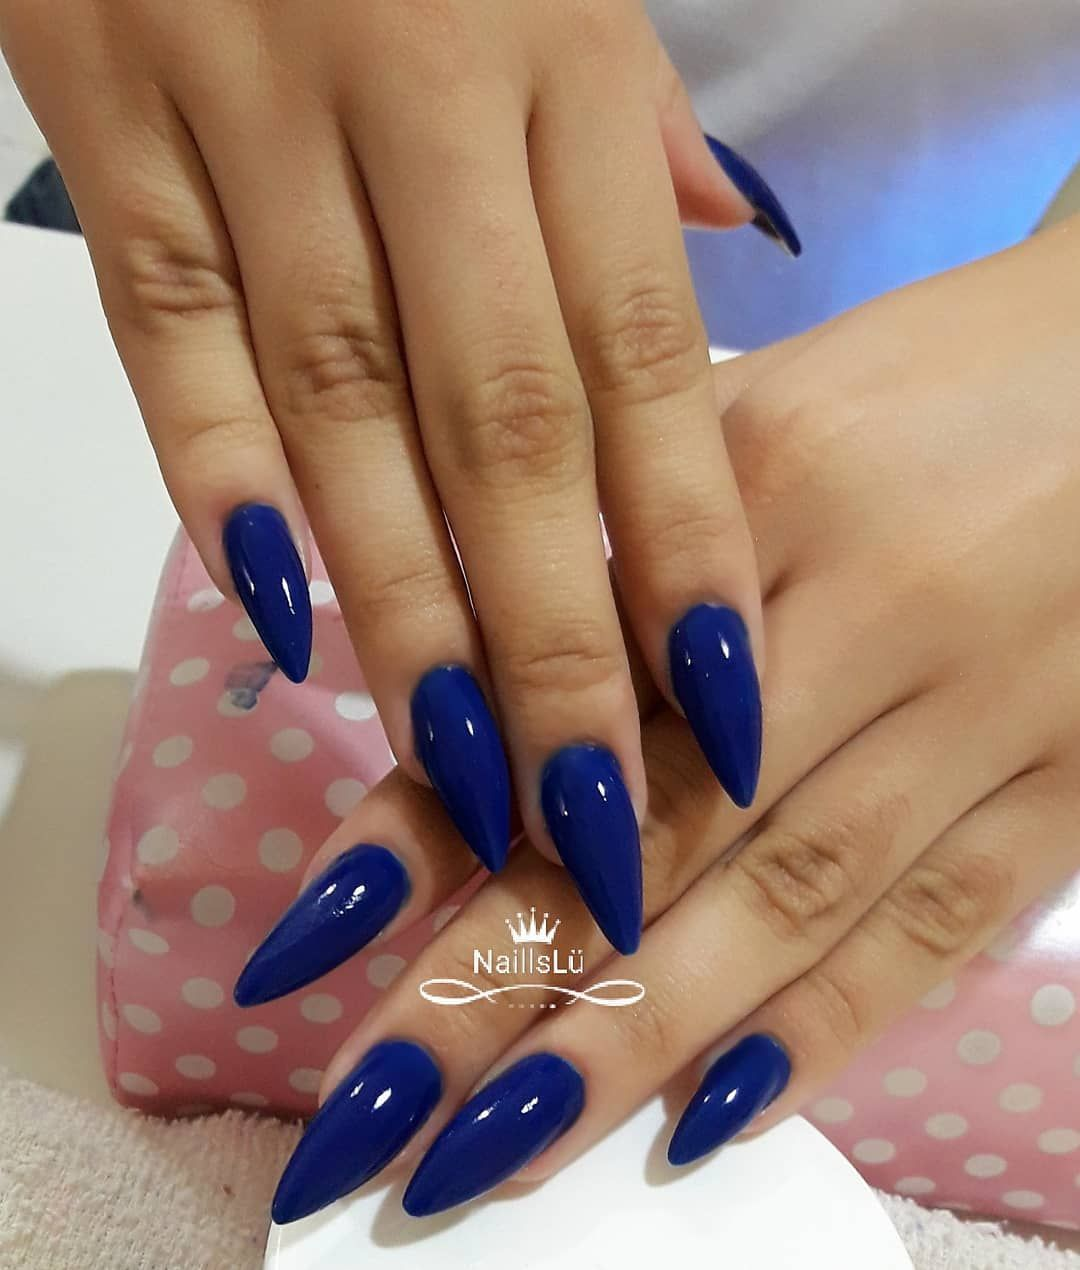 55 Stiletto Nail Art Ideas For Ultimate Fashion Trend With Images Stiletto Nail Art